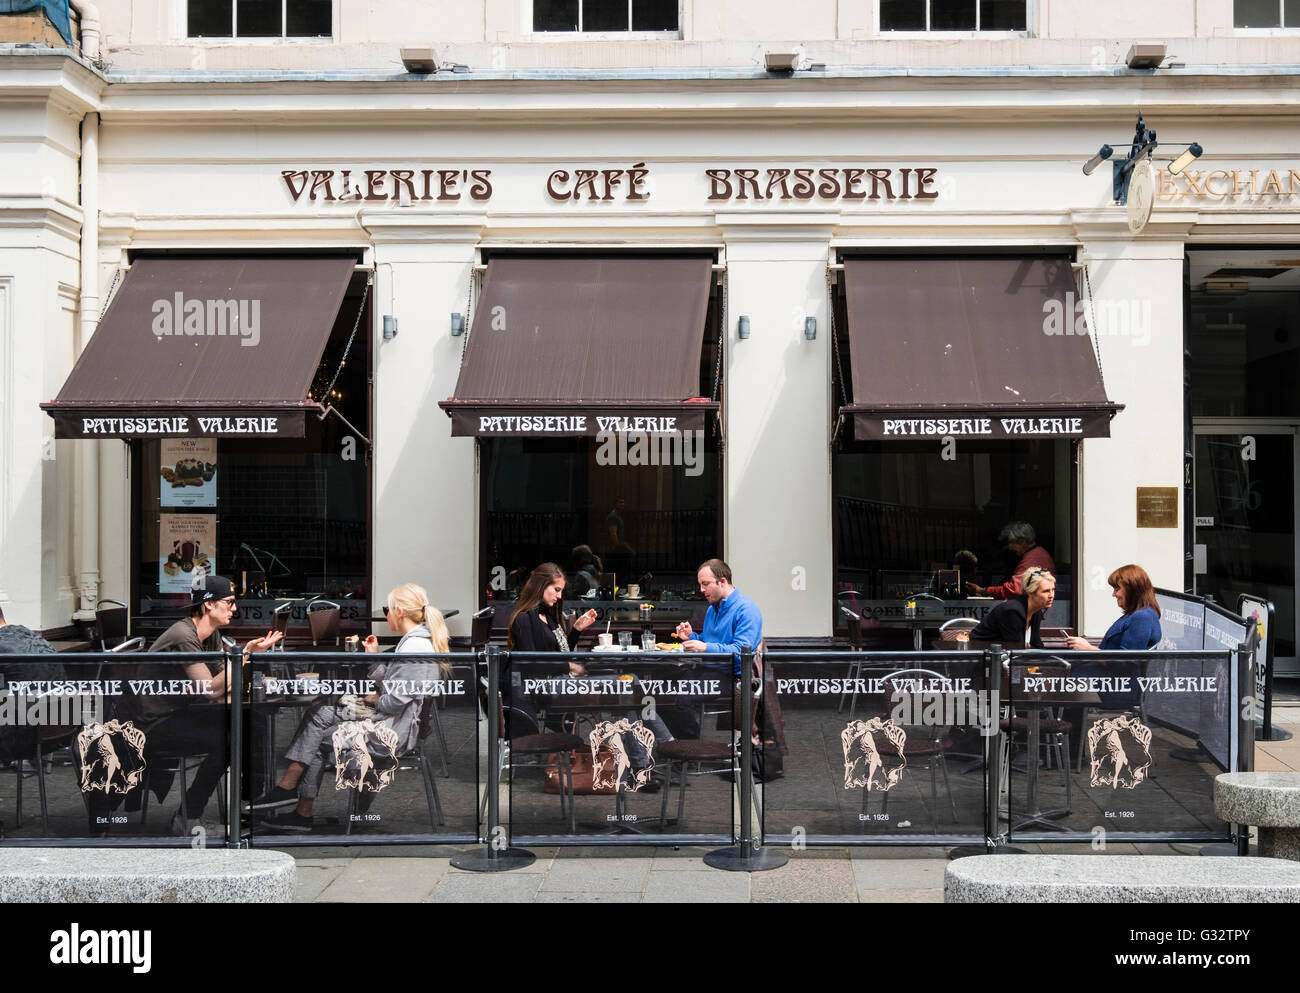 Valerie's Cafe and Brasserie in Royal Exchange Square in central Glasgow, Scotland, United Kingdom - Stock Image